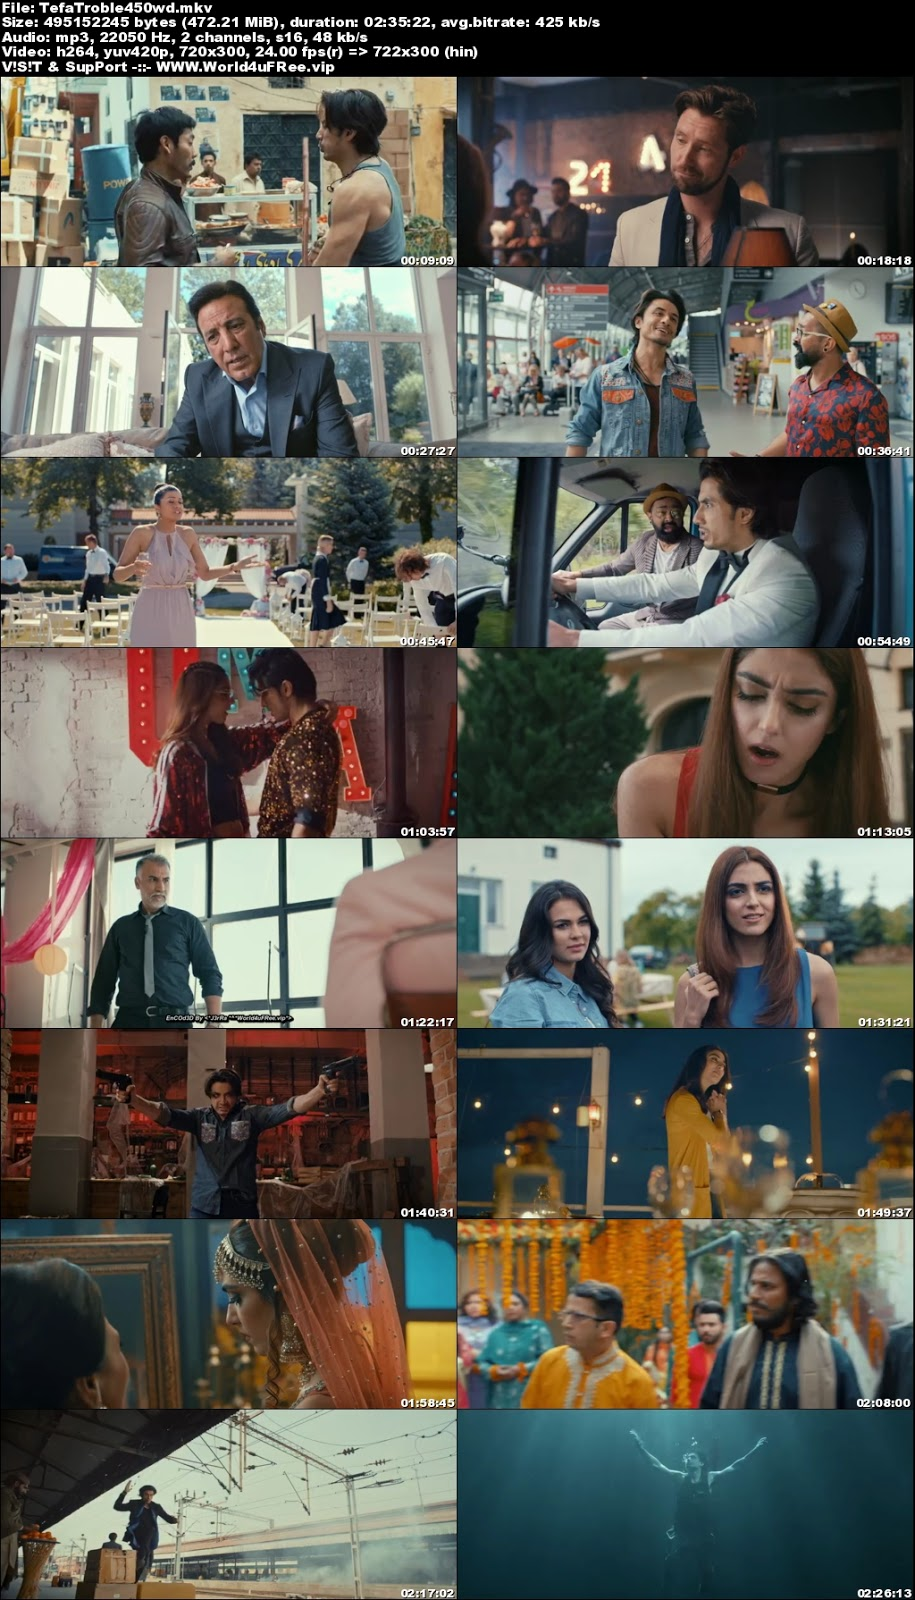 Teefa in Trouble 2018 Hindi Movie 480p HDRip 450Mb x264 world4ufree.vip , hindi movie Teefa in Trouble 2018 hdrip 720p bollywood movie Teefa in Trouble 2018 720p LATEST MOVie Teefa in Trouble 2018 720p DVDRip NEW MOVIE Teefa in Trouble 2018 720p WEBHD 700mb free download or watch online at world4ufree.vip